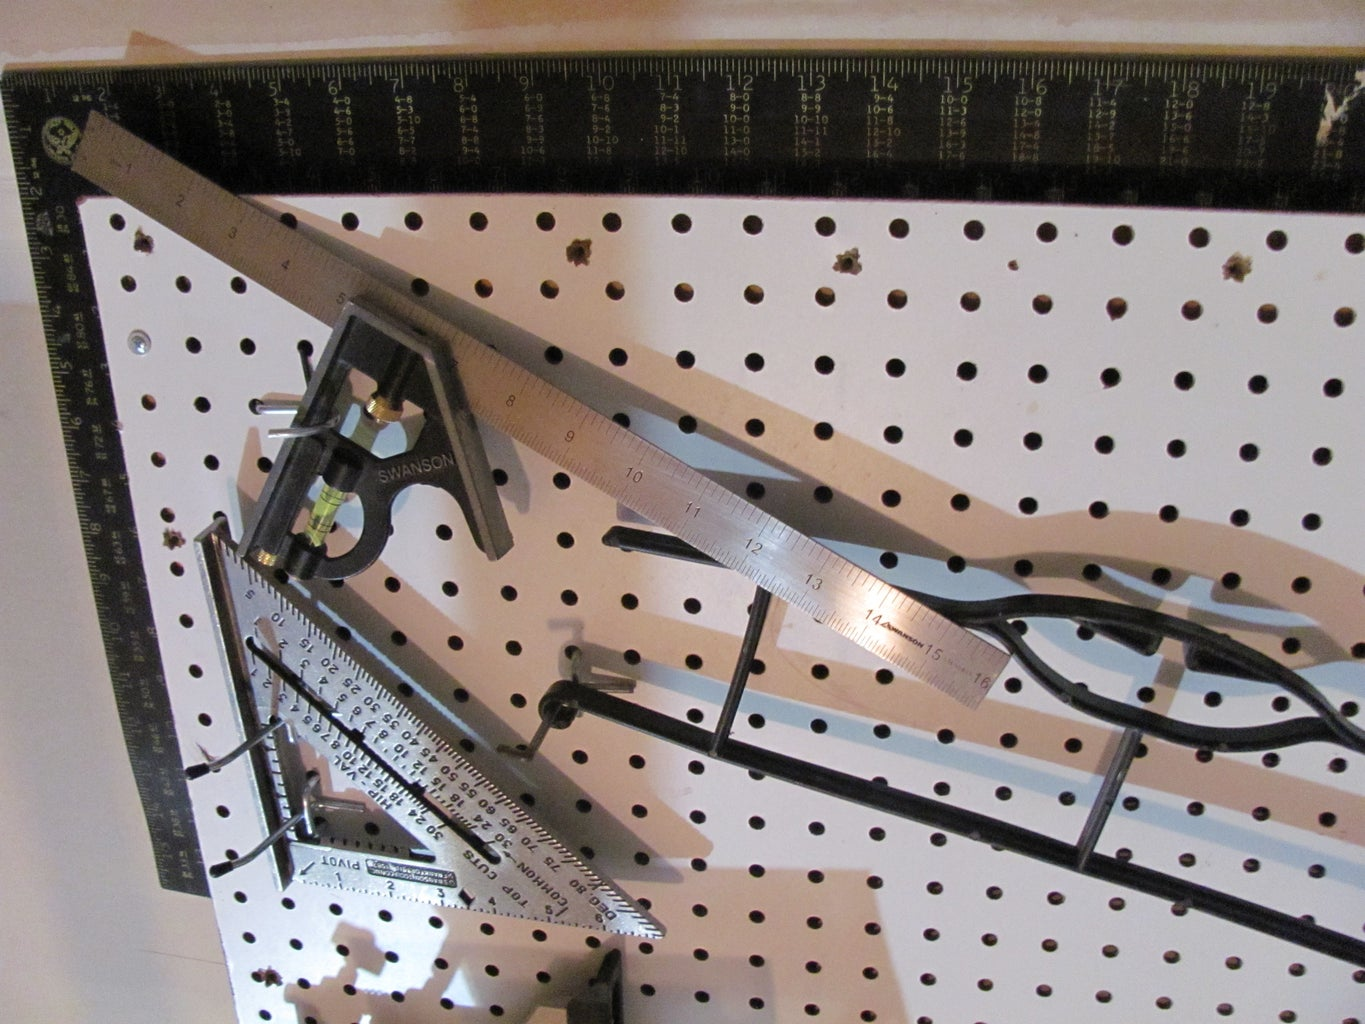 Transition: Pegboard